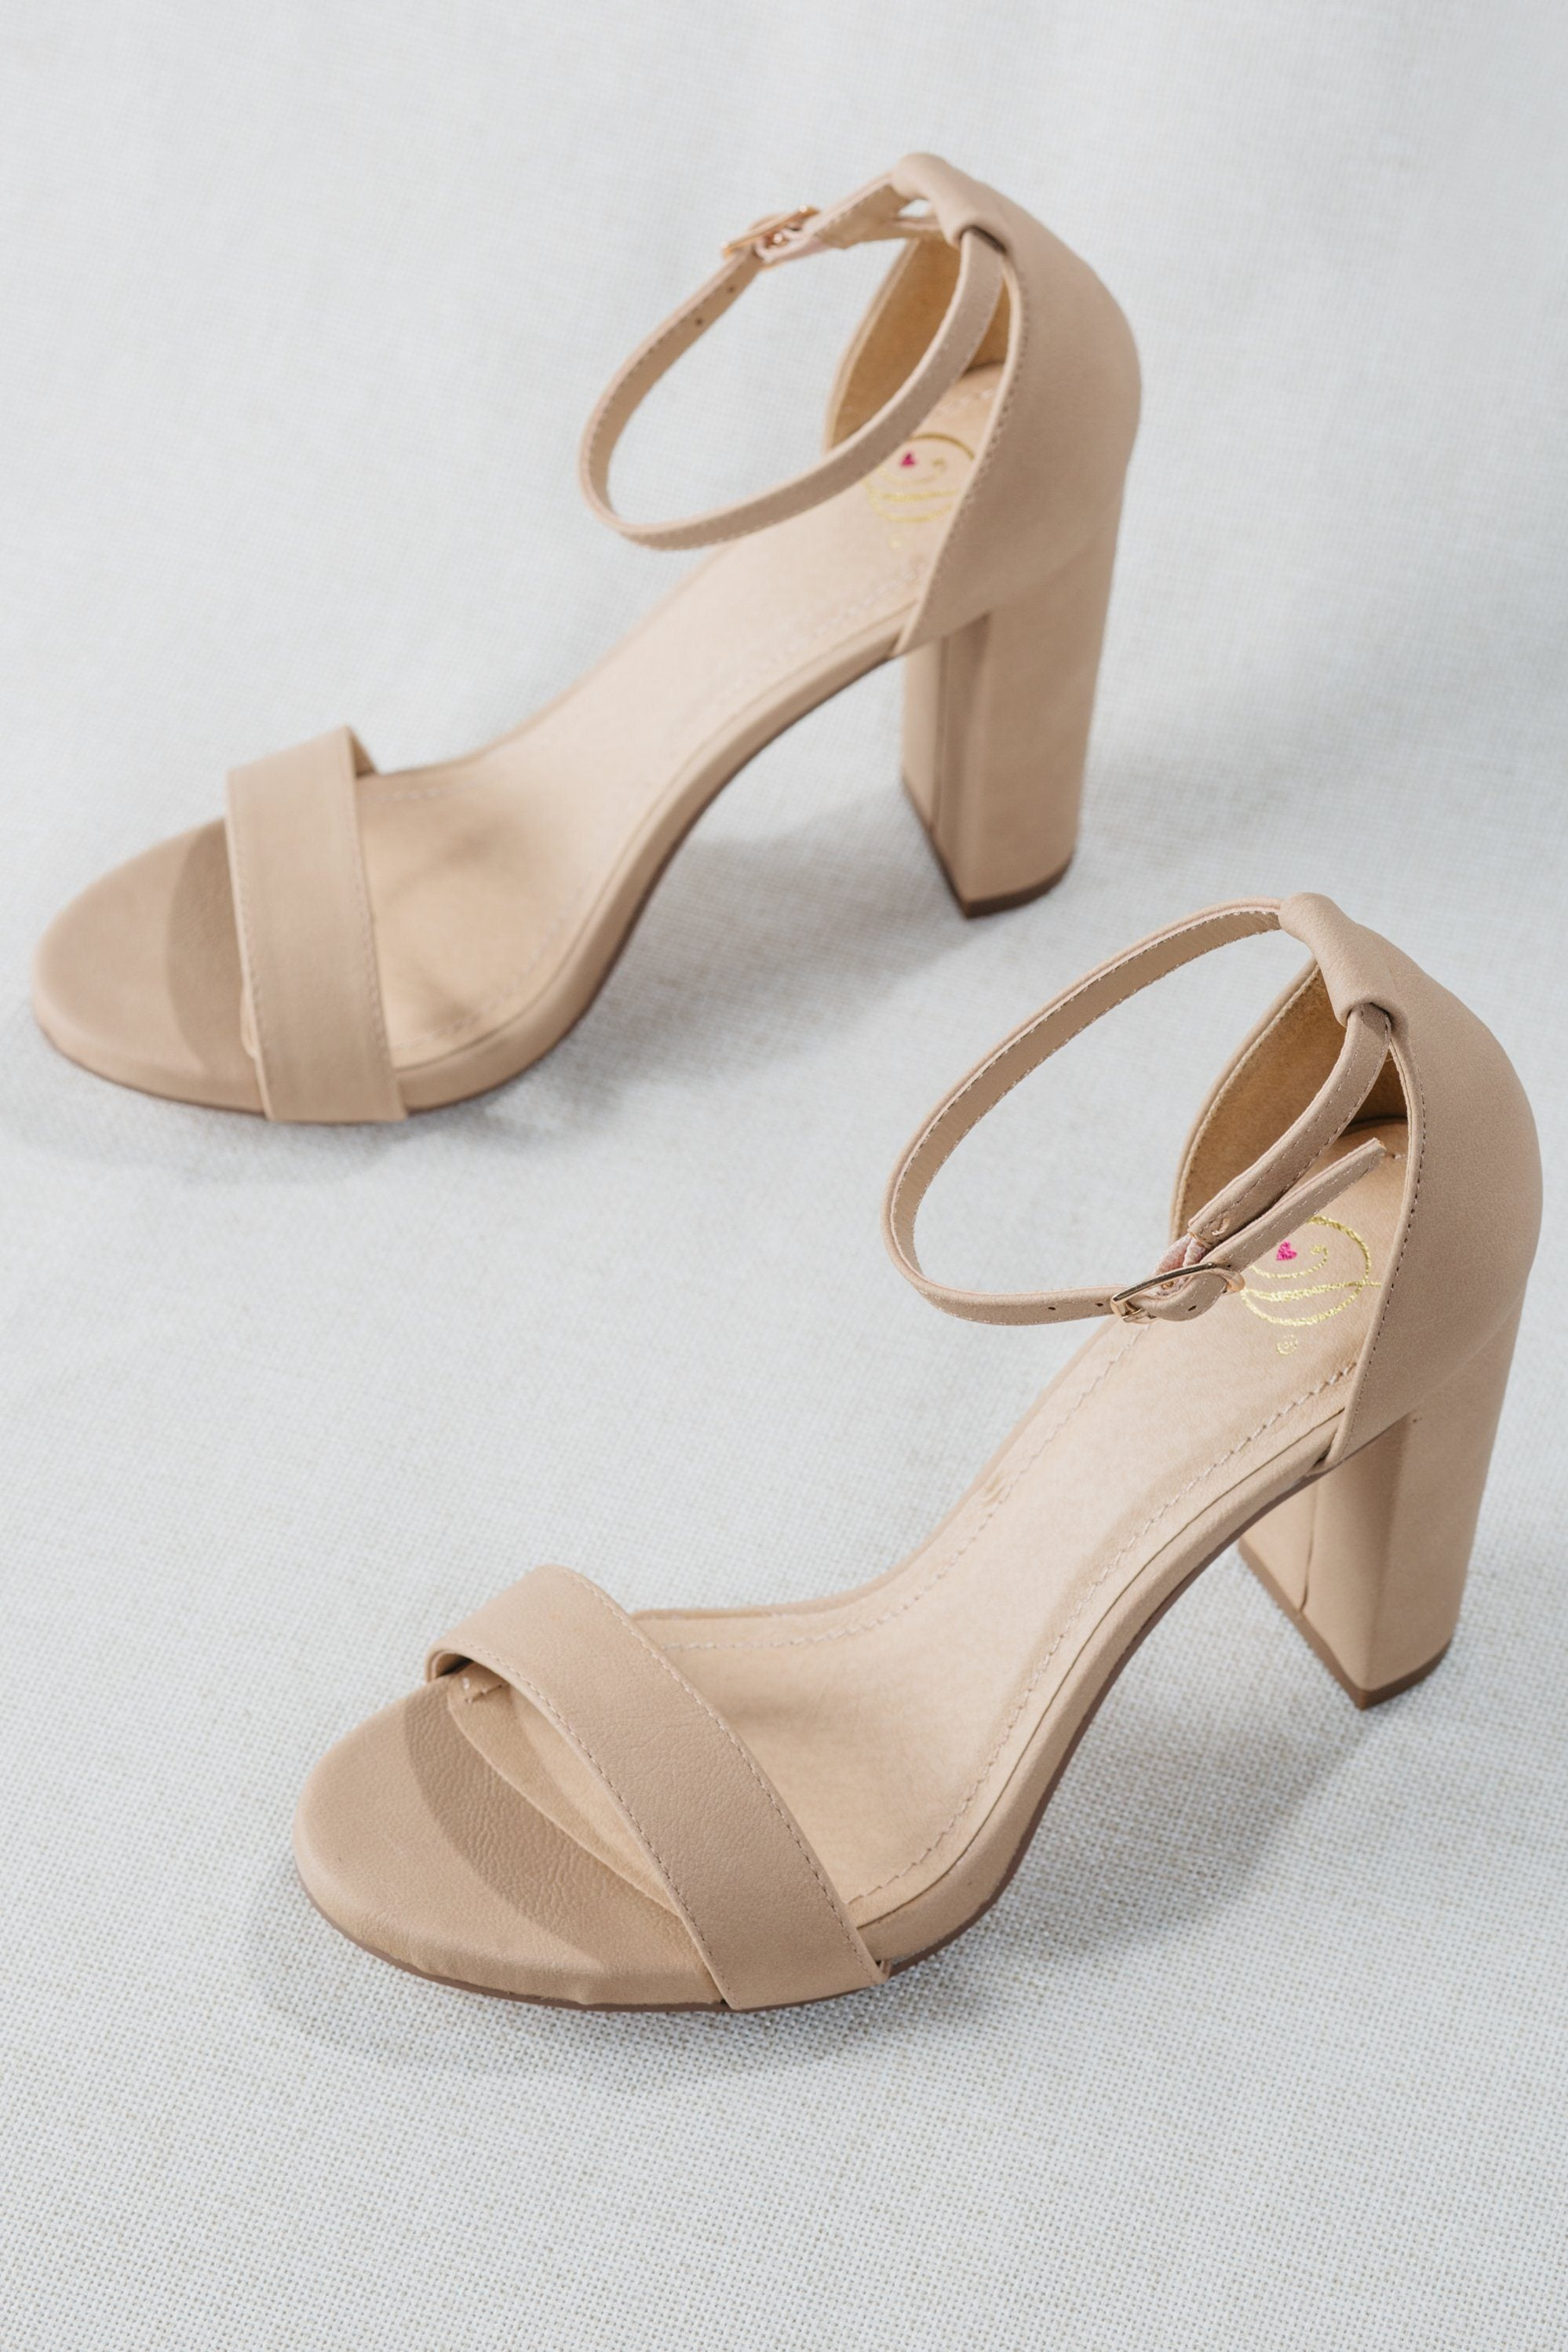 Dance All Night Heel release dates for sale cheap low price fee shipping cheap best place clearance 2014 unisex WakiQfRC